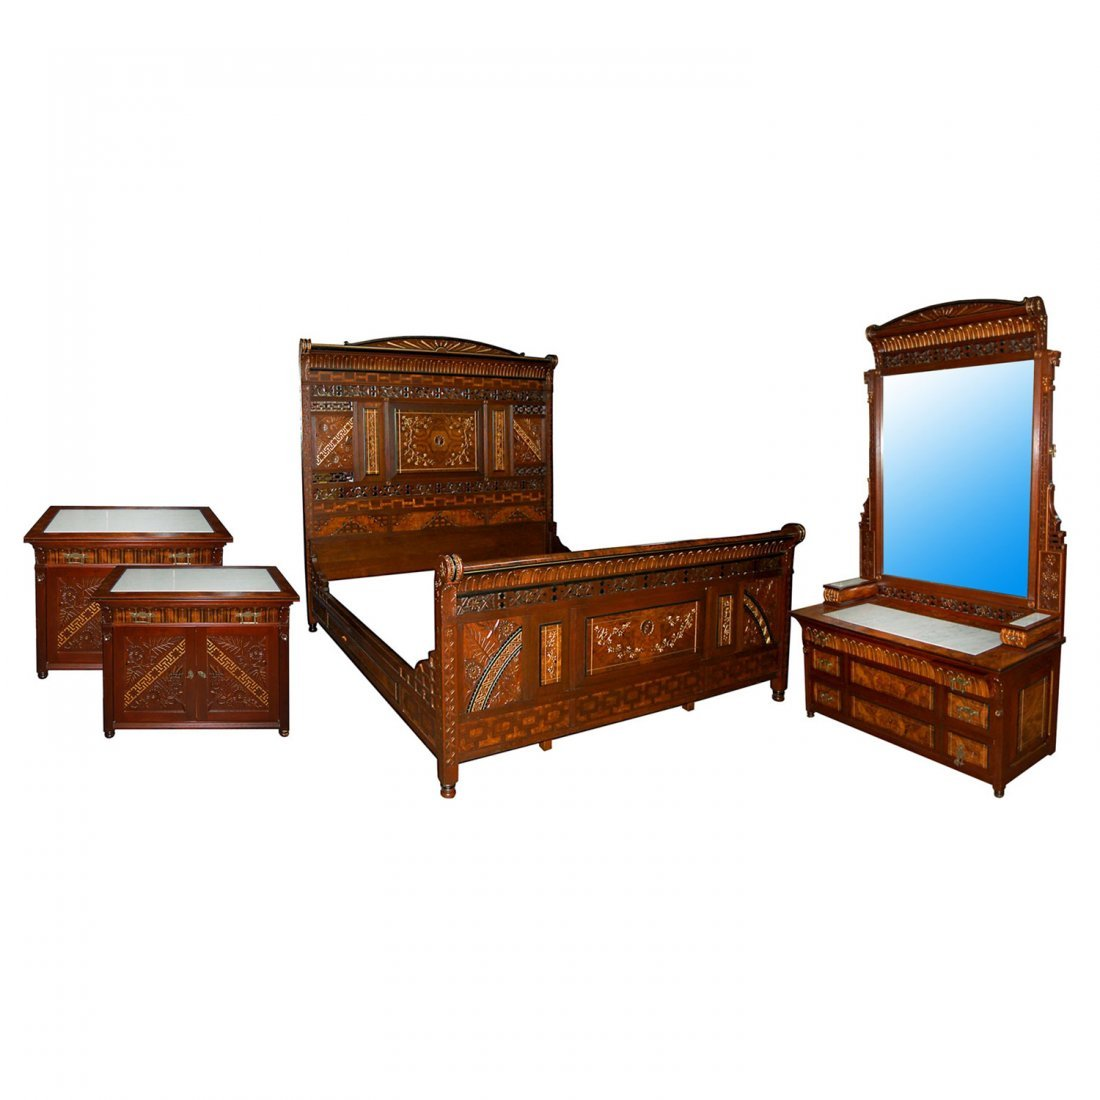 7432 4-Piece Victorian Aesthetic Movement King Size Bed